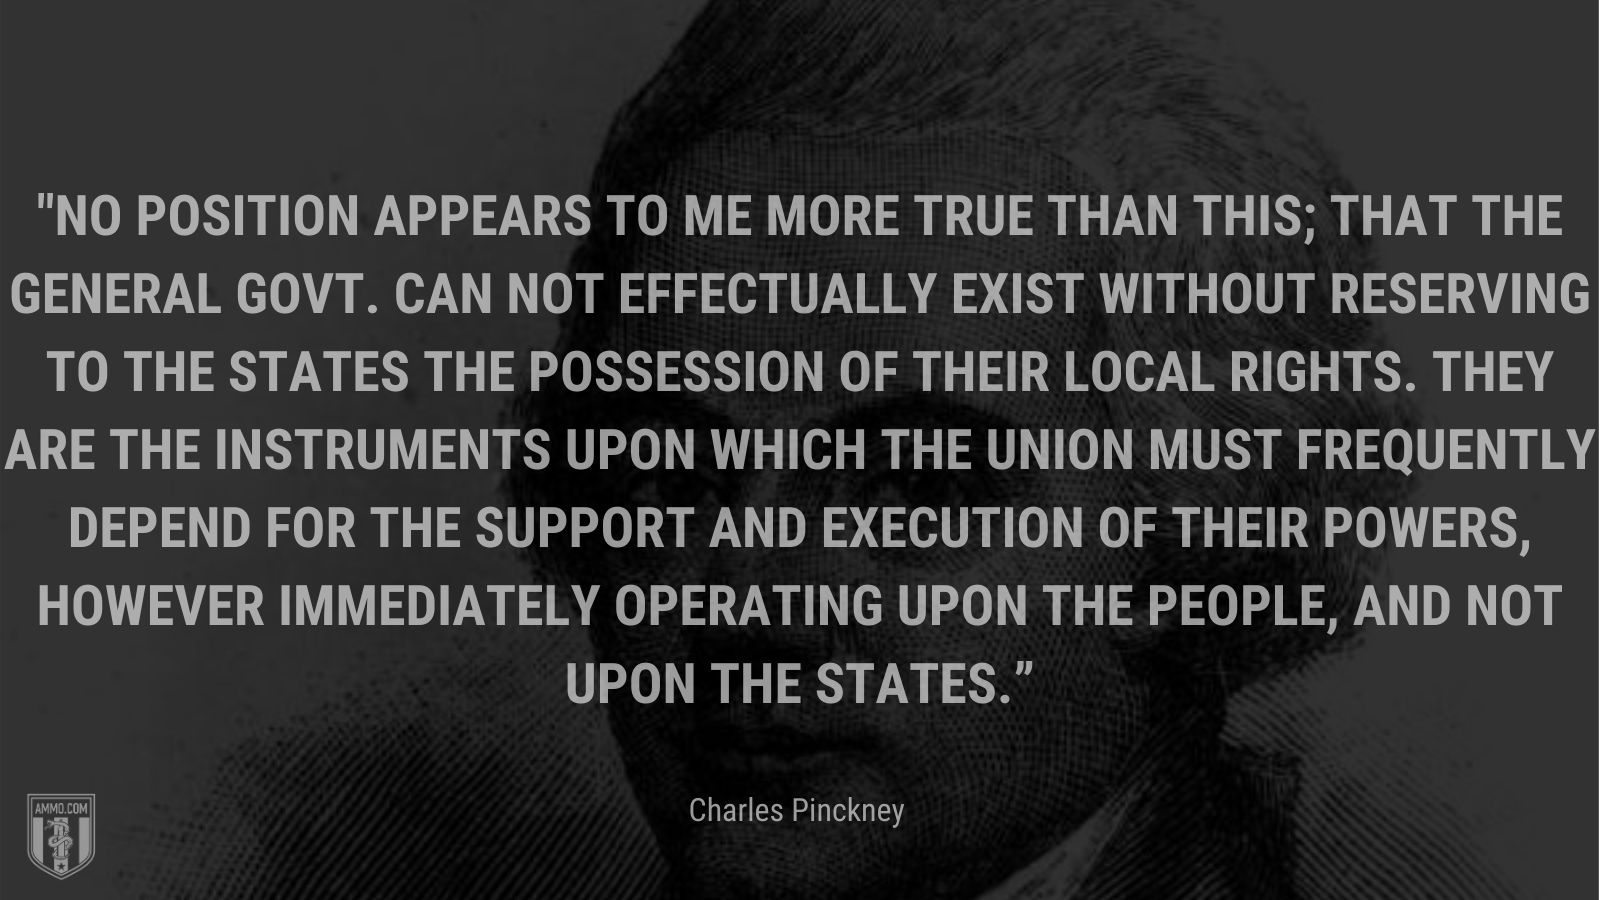 """""""No position appears to me more true than this; that the General Govt. can not effectually exist without reserving to the States the possession of their local rights. They are the instruments upon which the Union must frequently depend for the support and execution of their powers, however immediately operating upon the people, and not upon the States."""" - Charles Pinckney"""